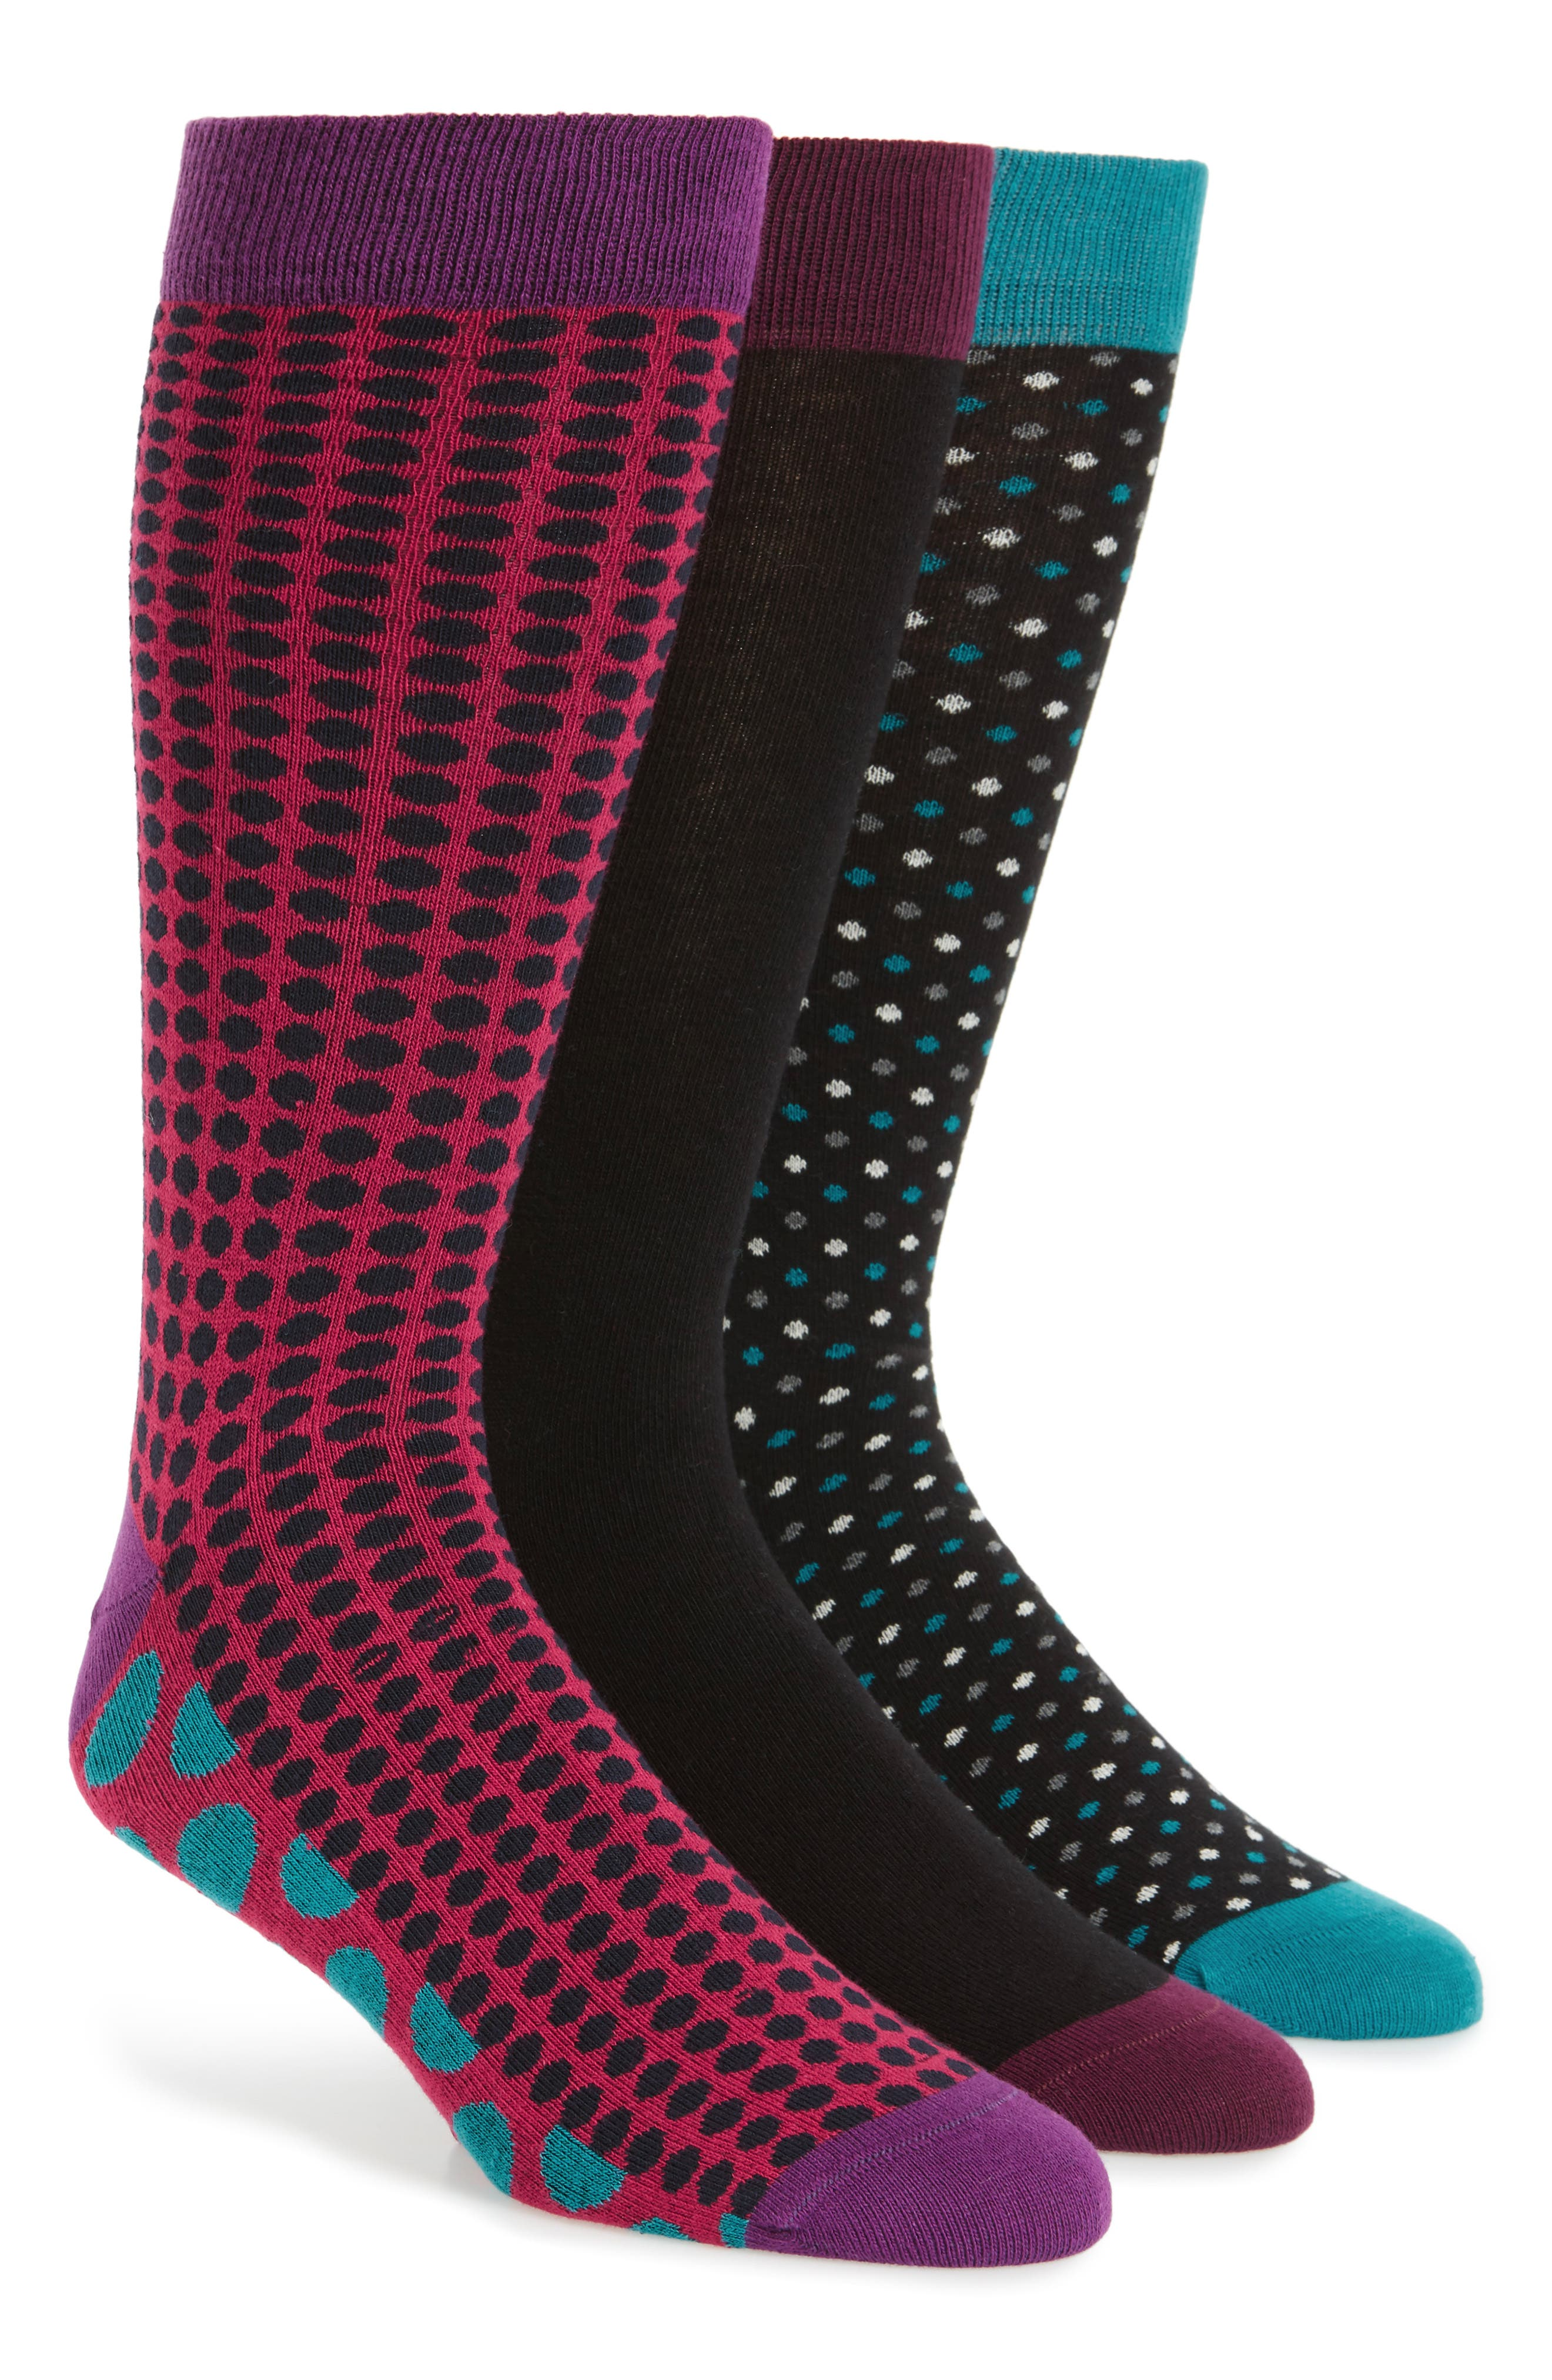 Assorted 3-Pack Crew Socks,                         Main,                         color, Black Assorted